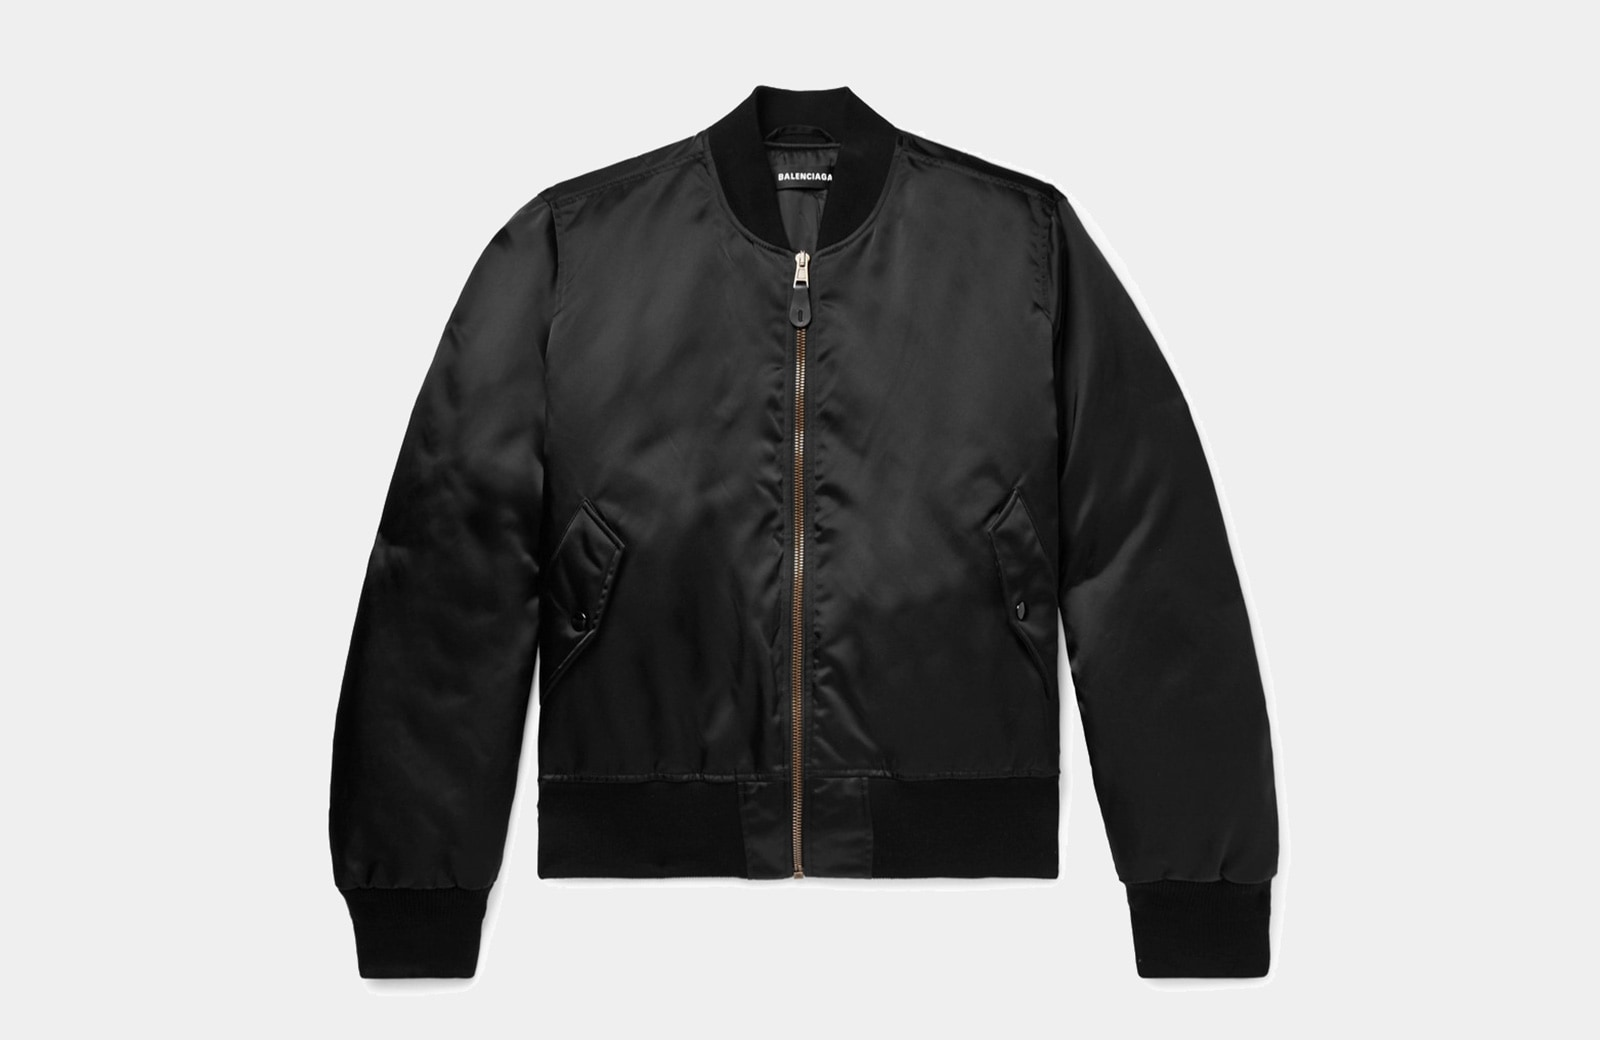 16492da86 22 Best Bomber Jackets For Men: Your Definitive Guide To Look Amazing